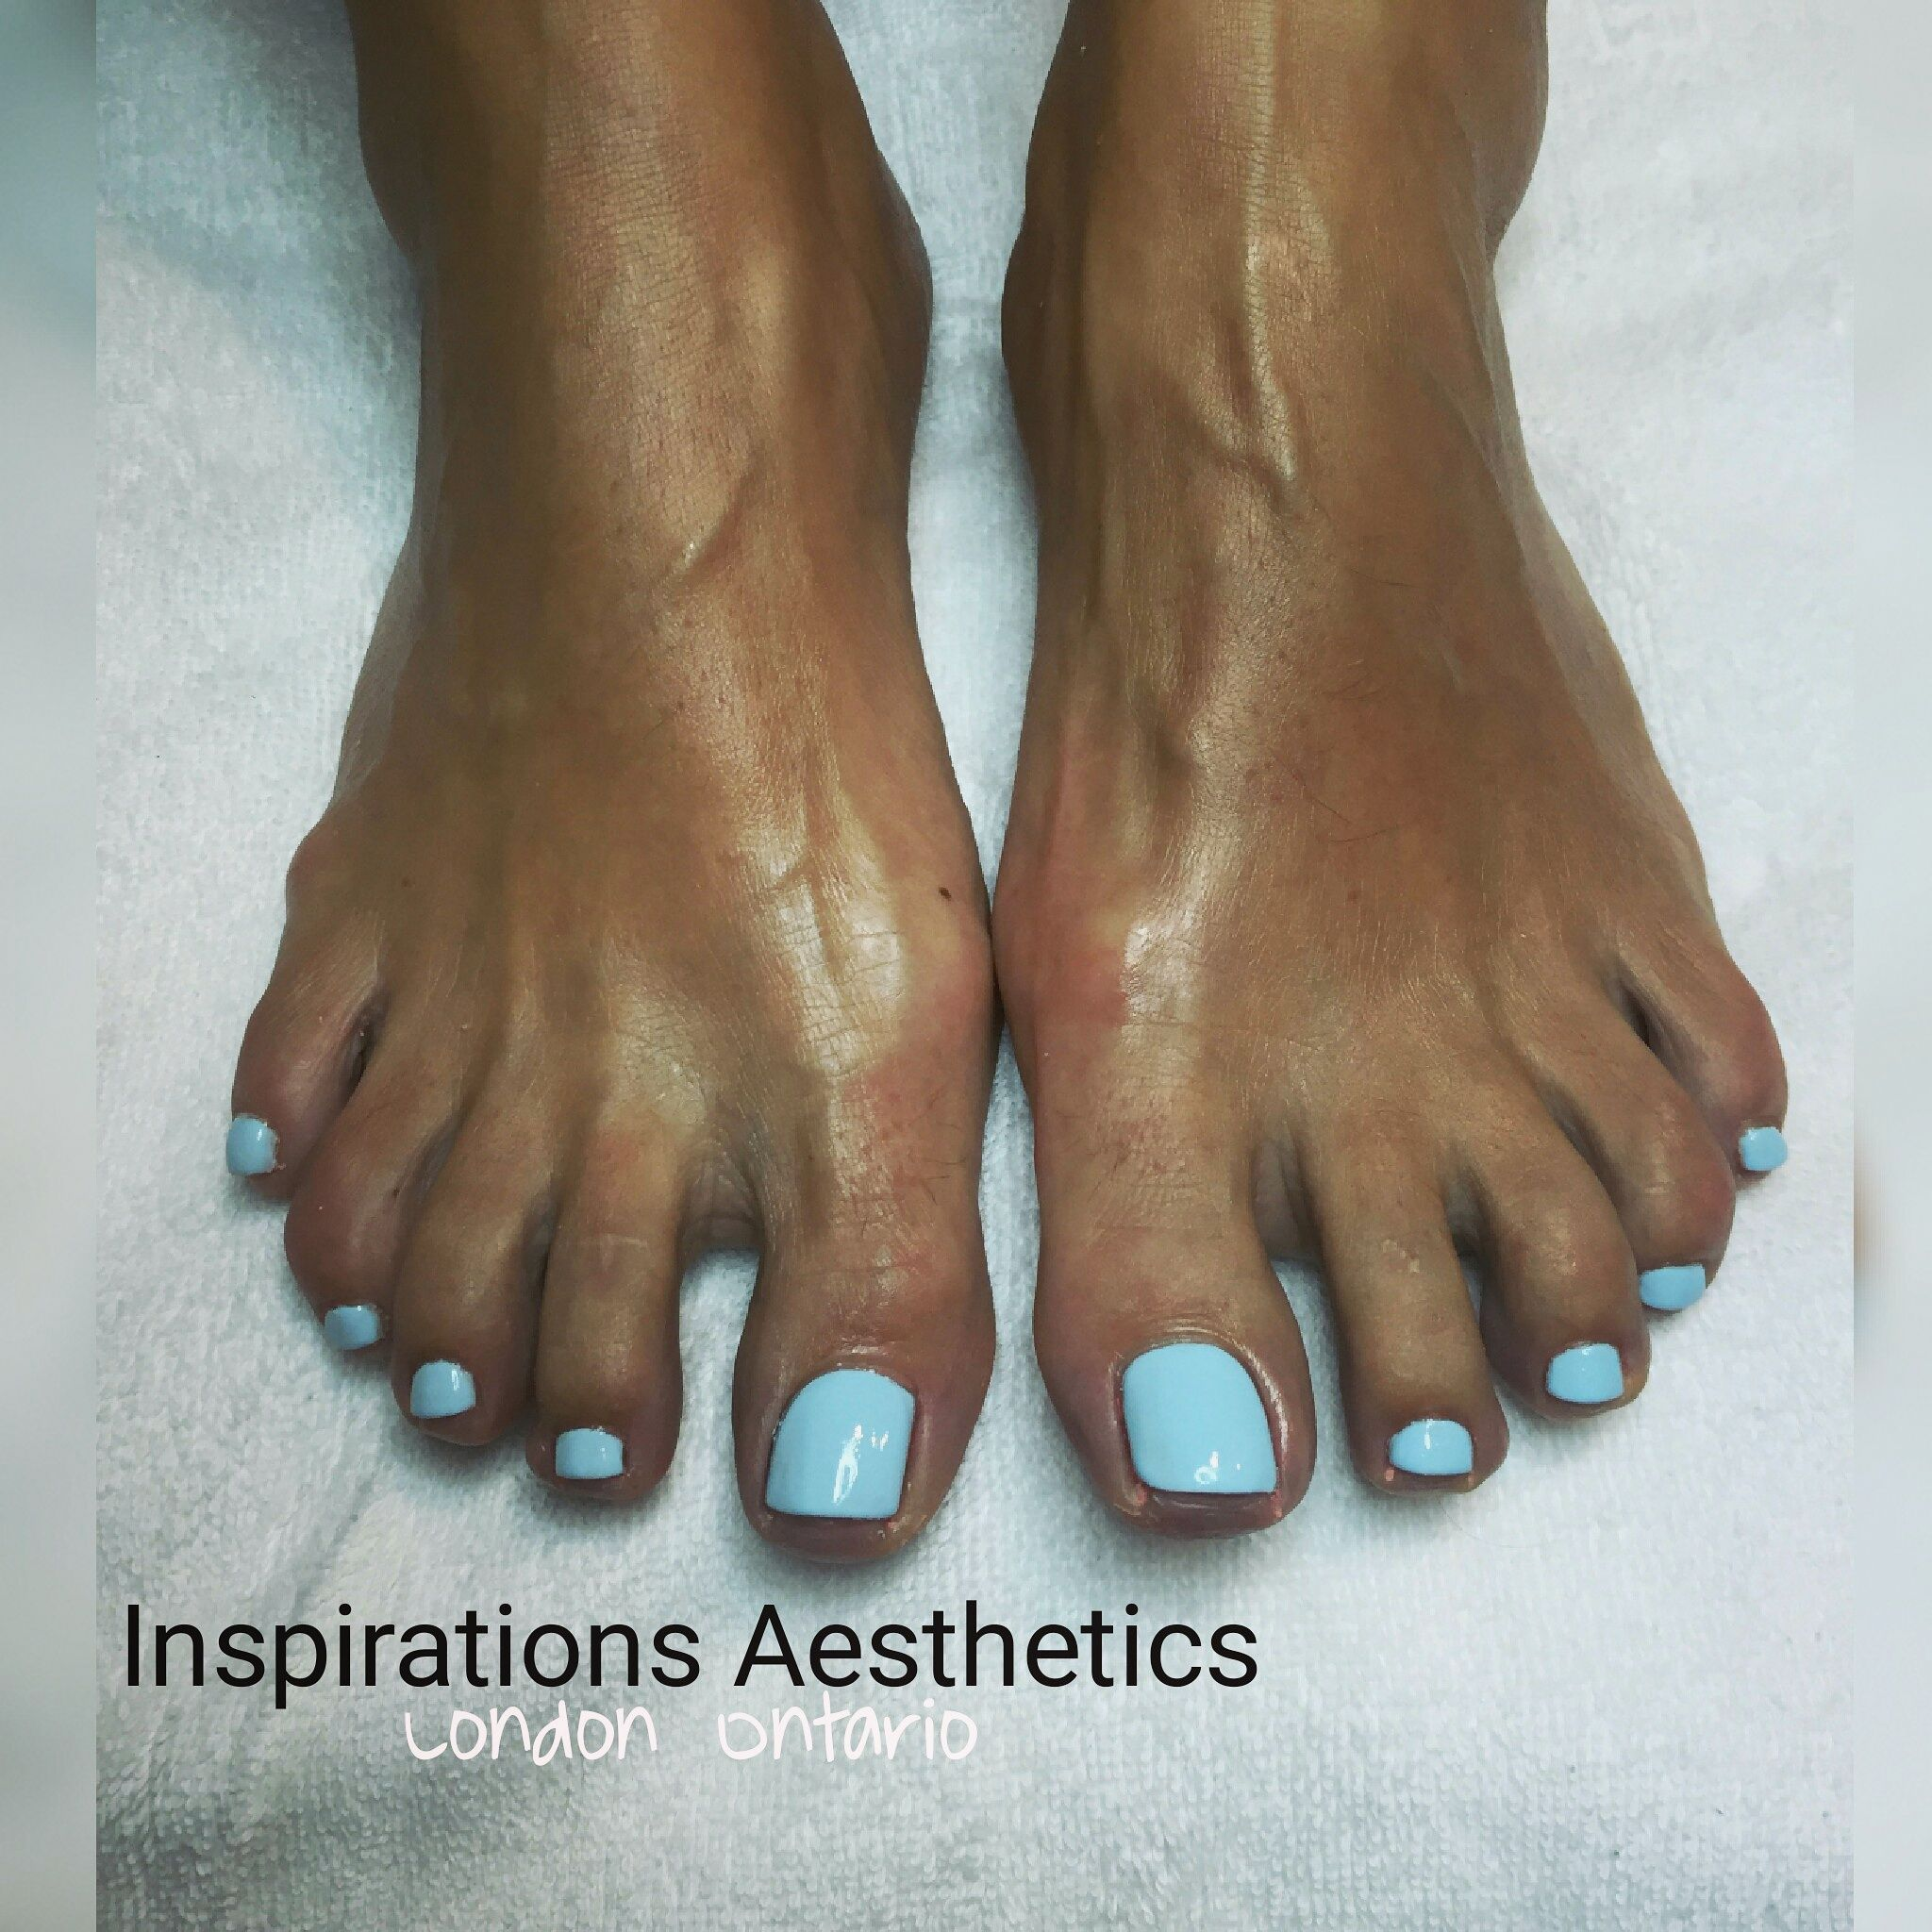 Baby Blue Toes looking fabulous on these beautiful tanned feet Spa Pedicure $45 00 with Inspirations